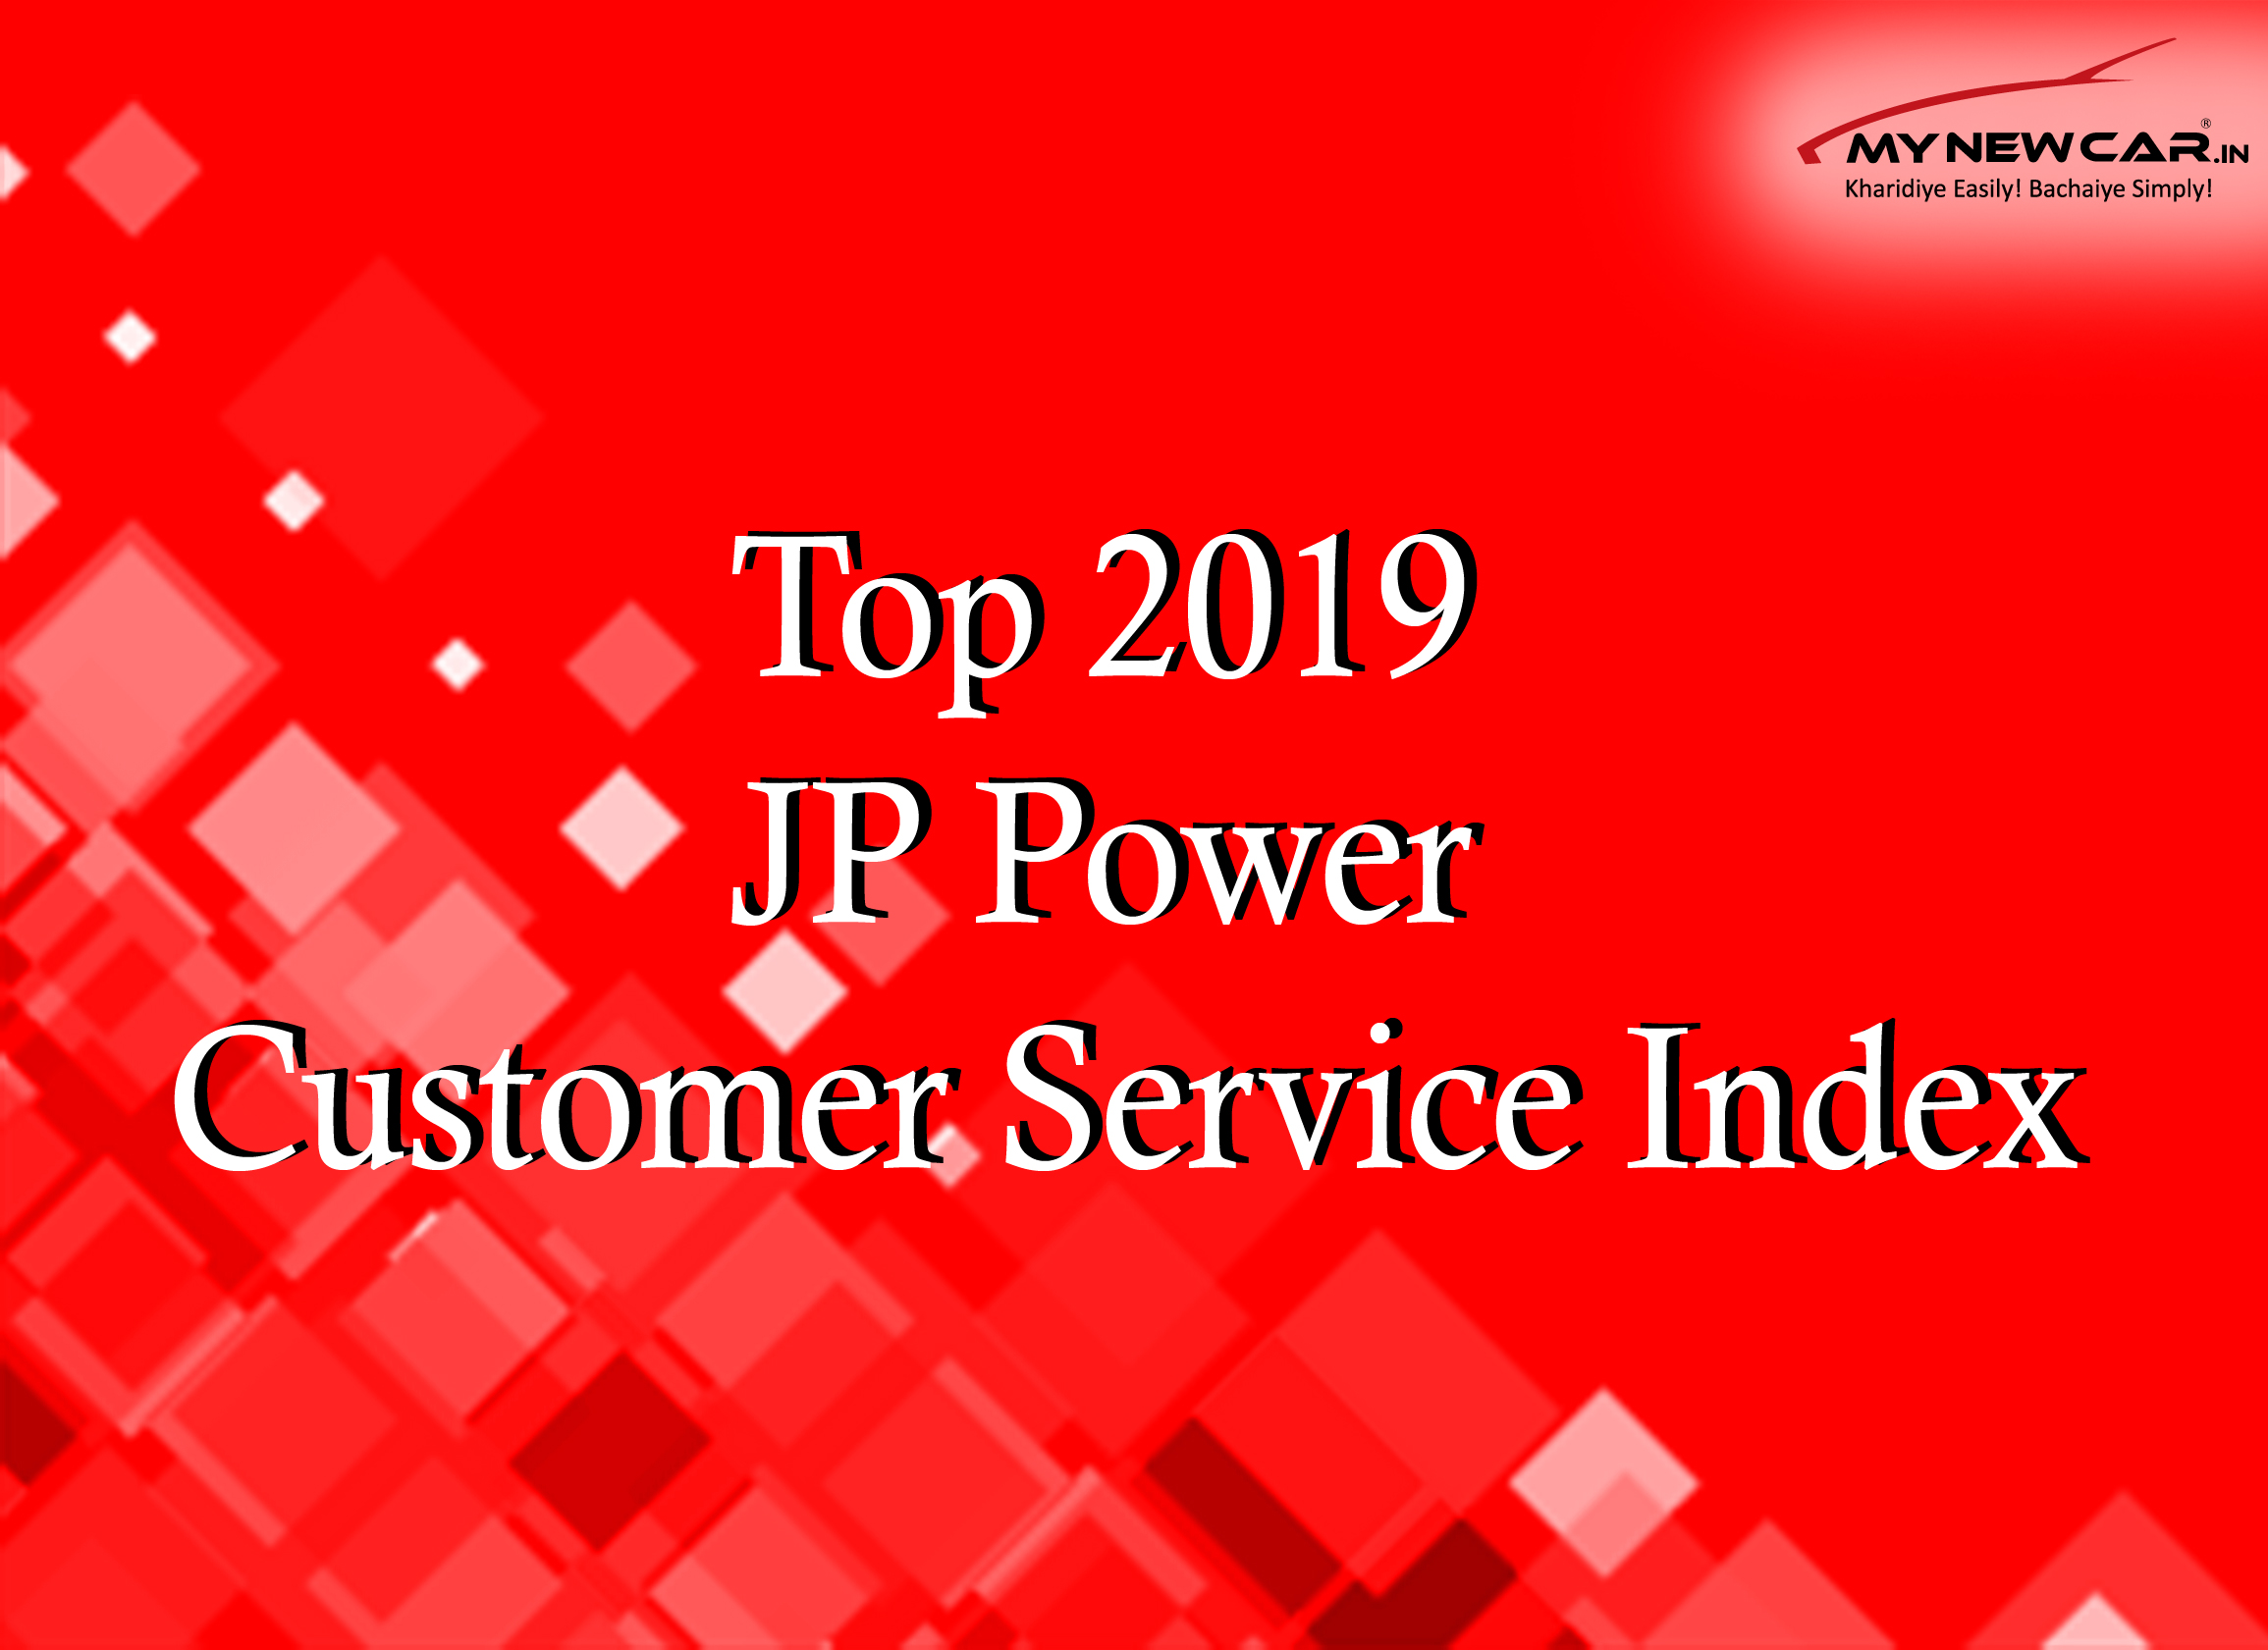 Hyundai, Tata & Mahindra top 2019 JP Power Customer Service Index